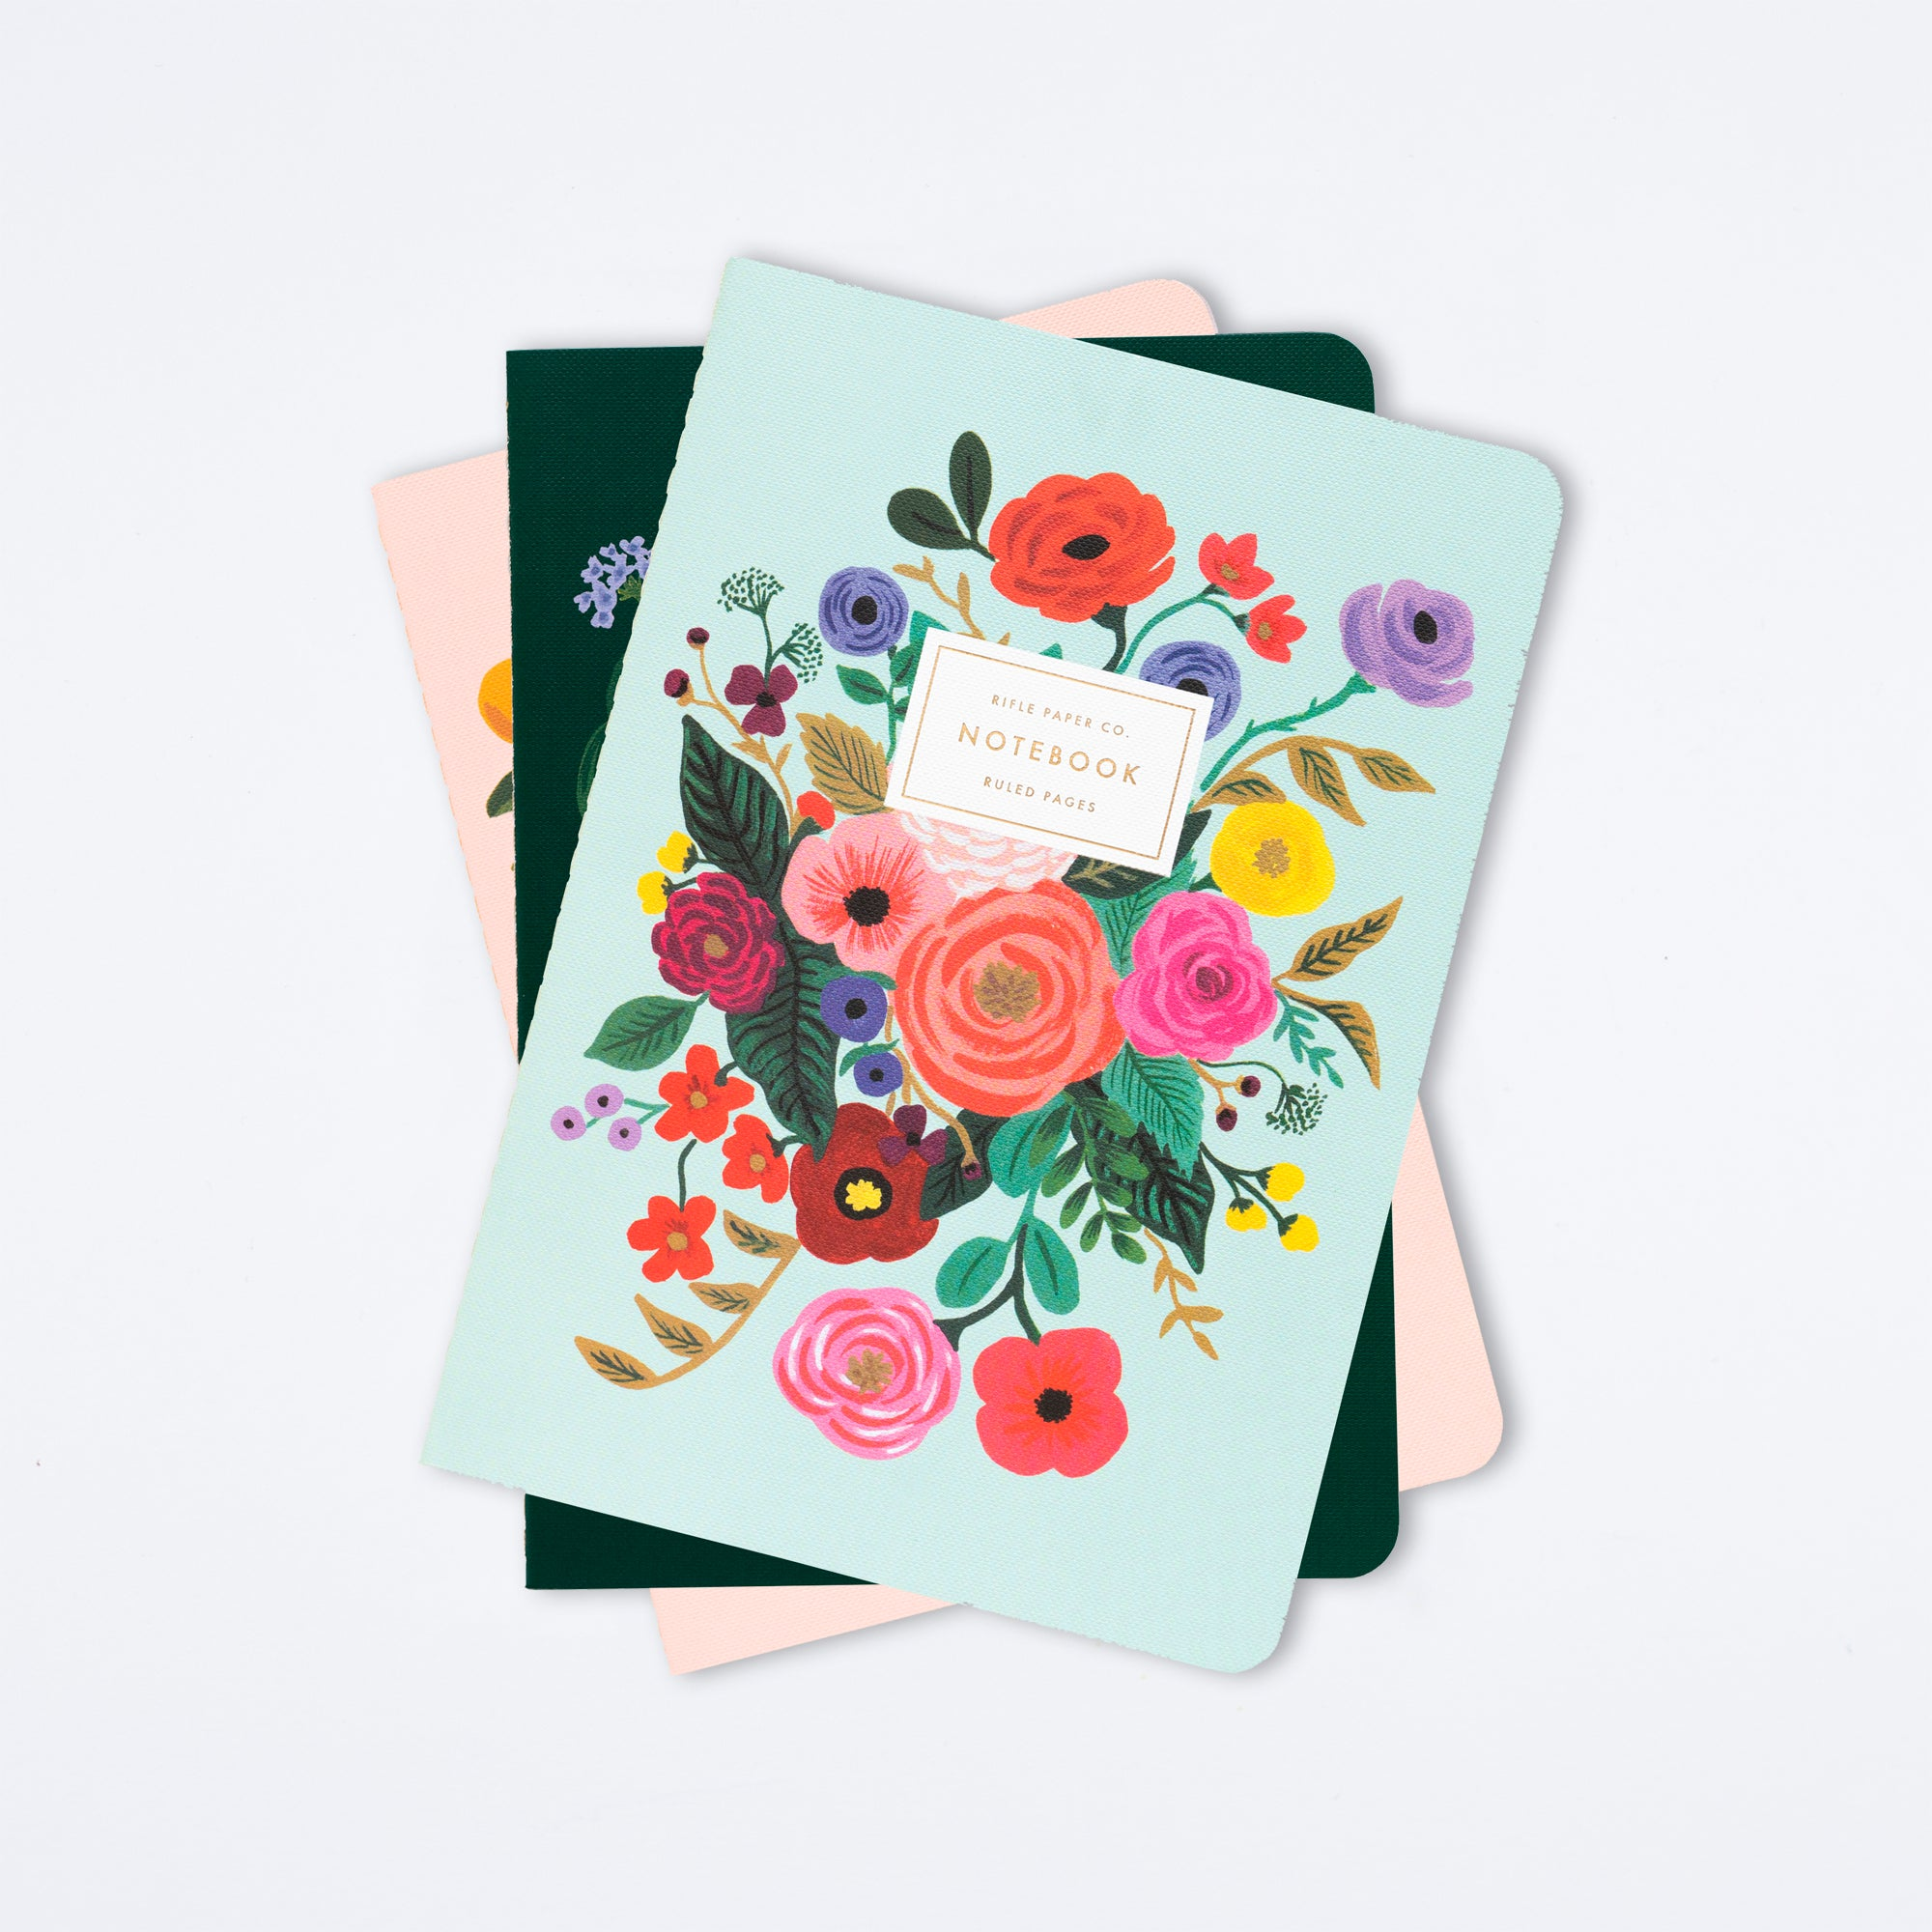 Garden Party Stitched Notebook Set